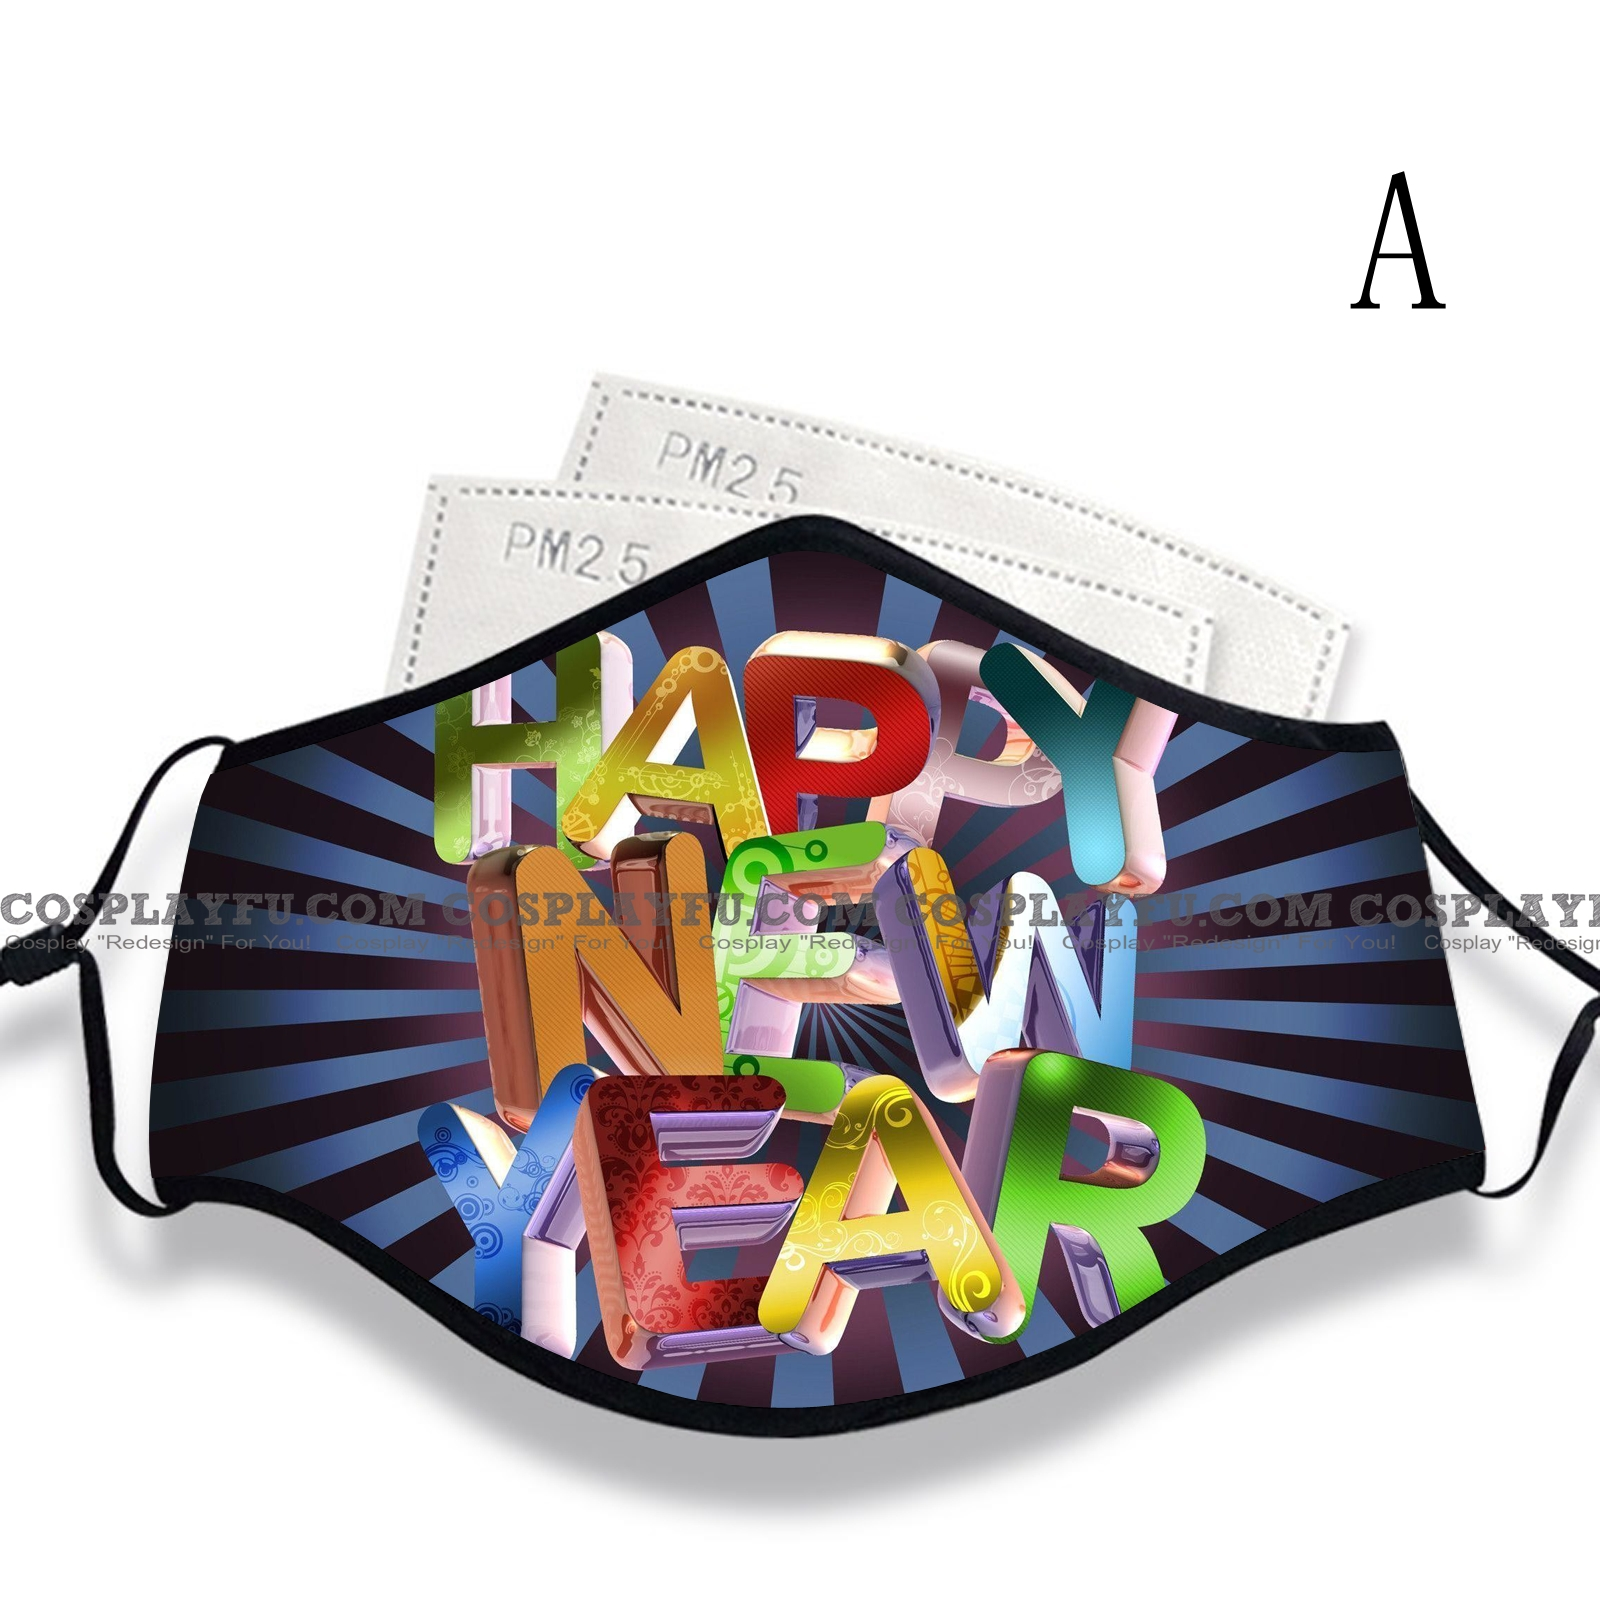 New Year's Day Face Mask for Adults (Cotton, Washable, Reusable) with Pocket with Nose Wire